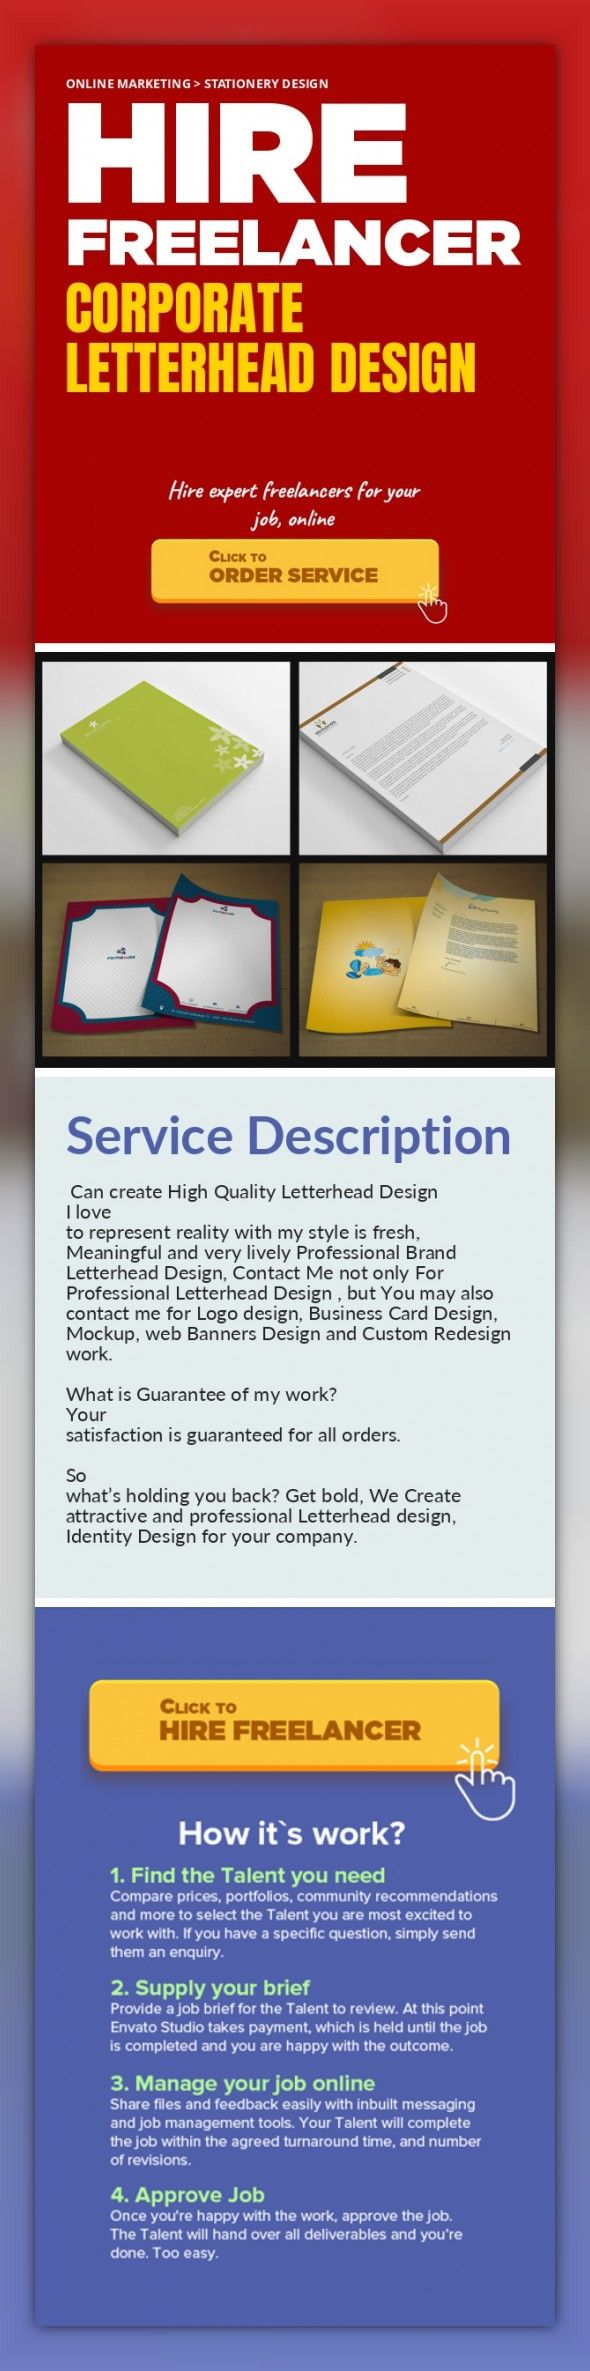 Corporate Letterhead Design Online Marketing, Stationery Design    Can create High Quality Letterhead Design  I love to represent reality with my style is fresh, Meaningful and very lively Professional Brand Letterhead Design, Contact Me not only For Professional Letterhead Design , but You may also contact me for Logo design, Business Card Design, Mockup, web Banners Design and Custom Redesign wo...